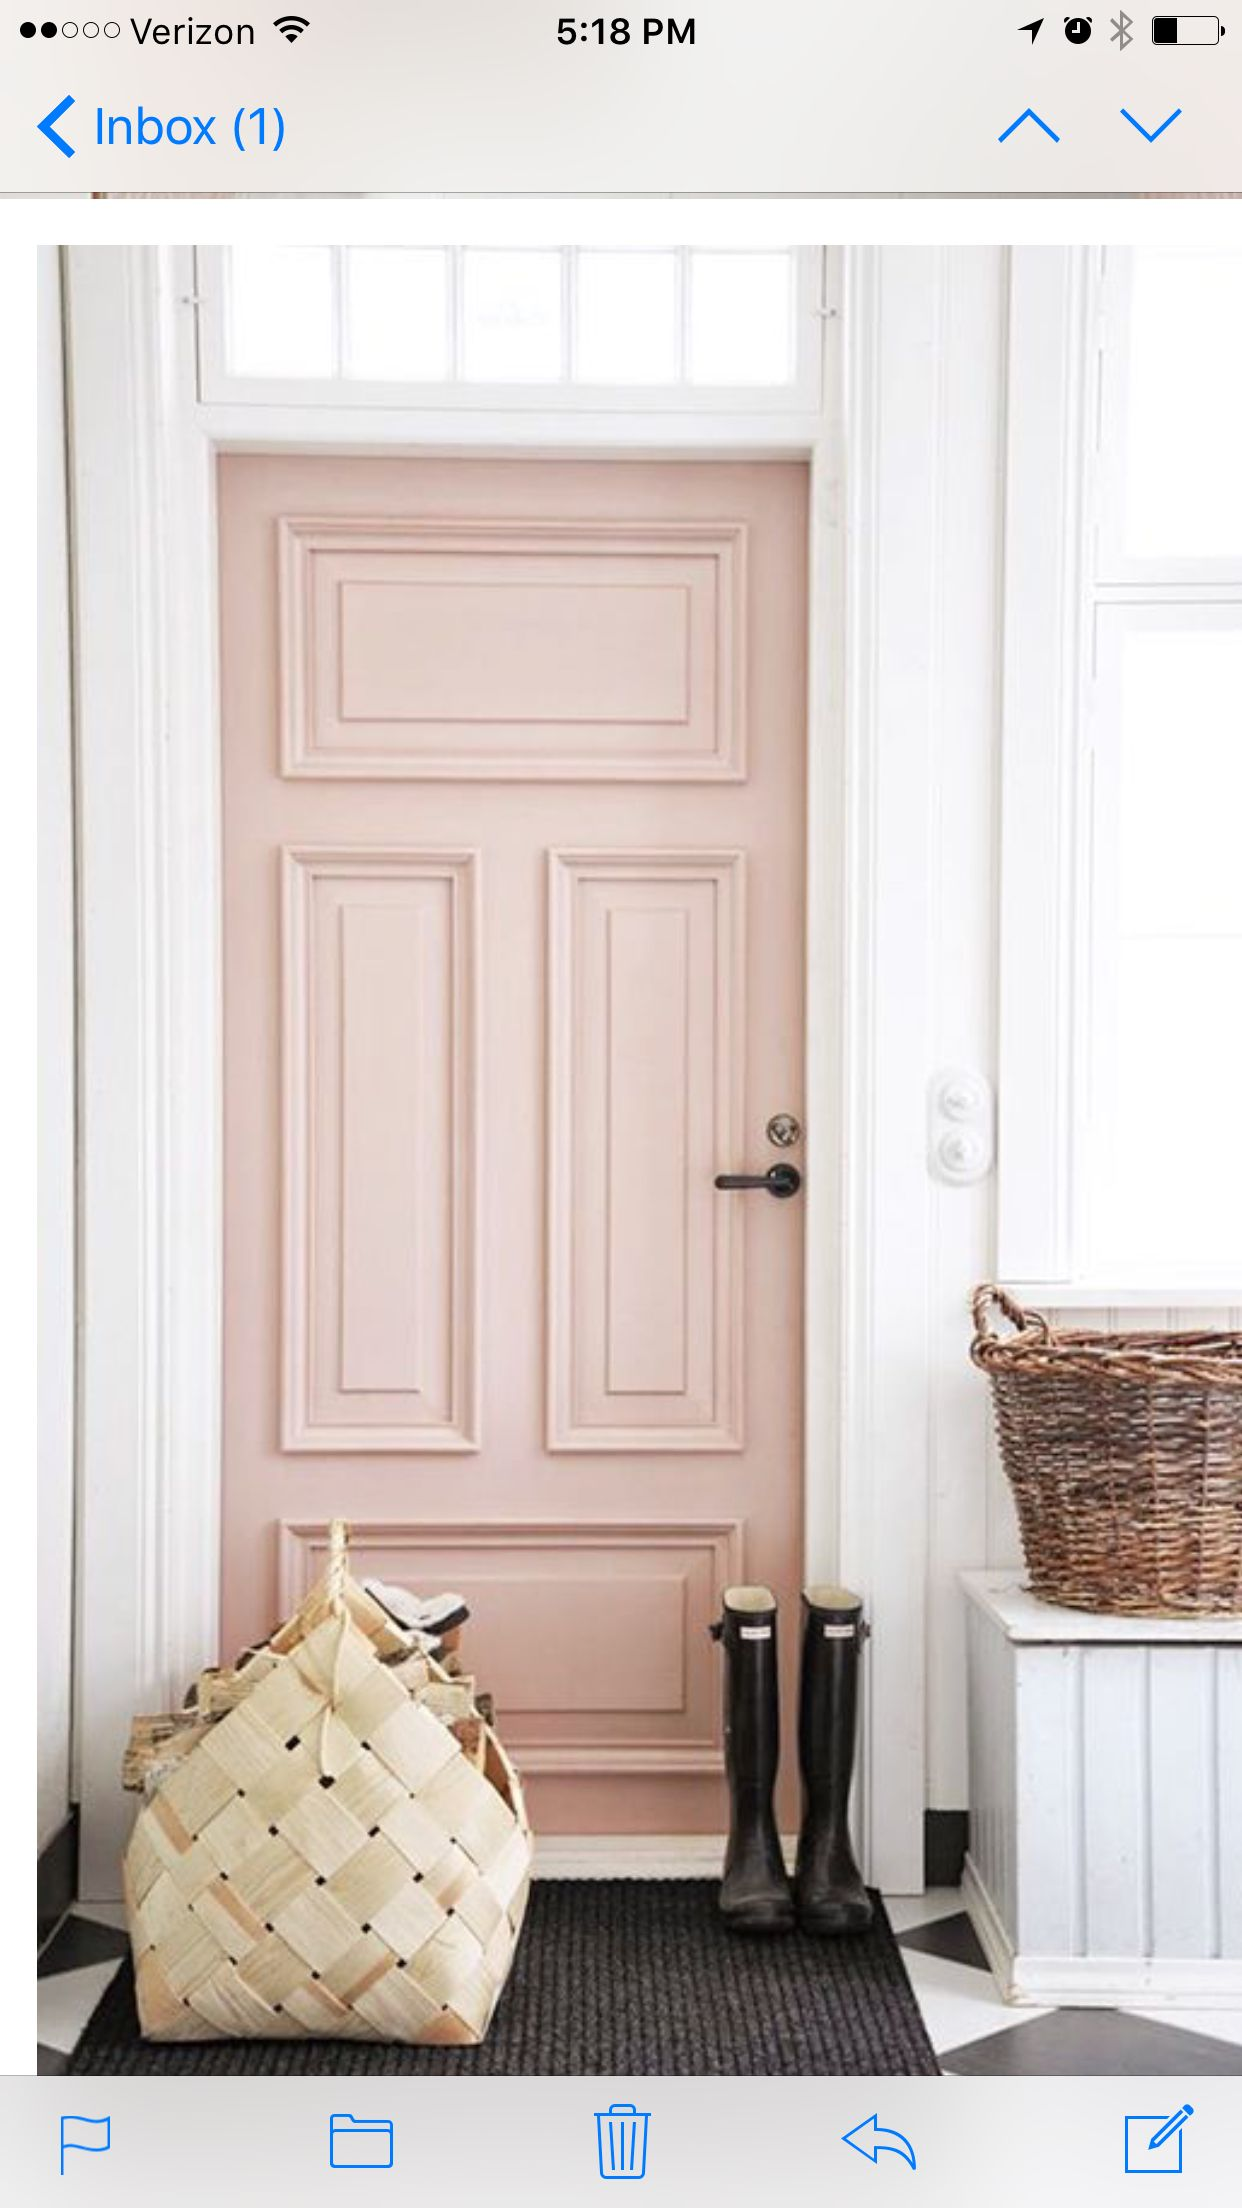 Farben des wohnraums 2018 must find new door  diy home ideas in   pinterest  haus